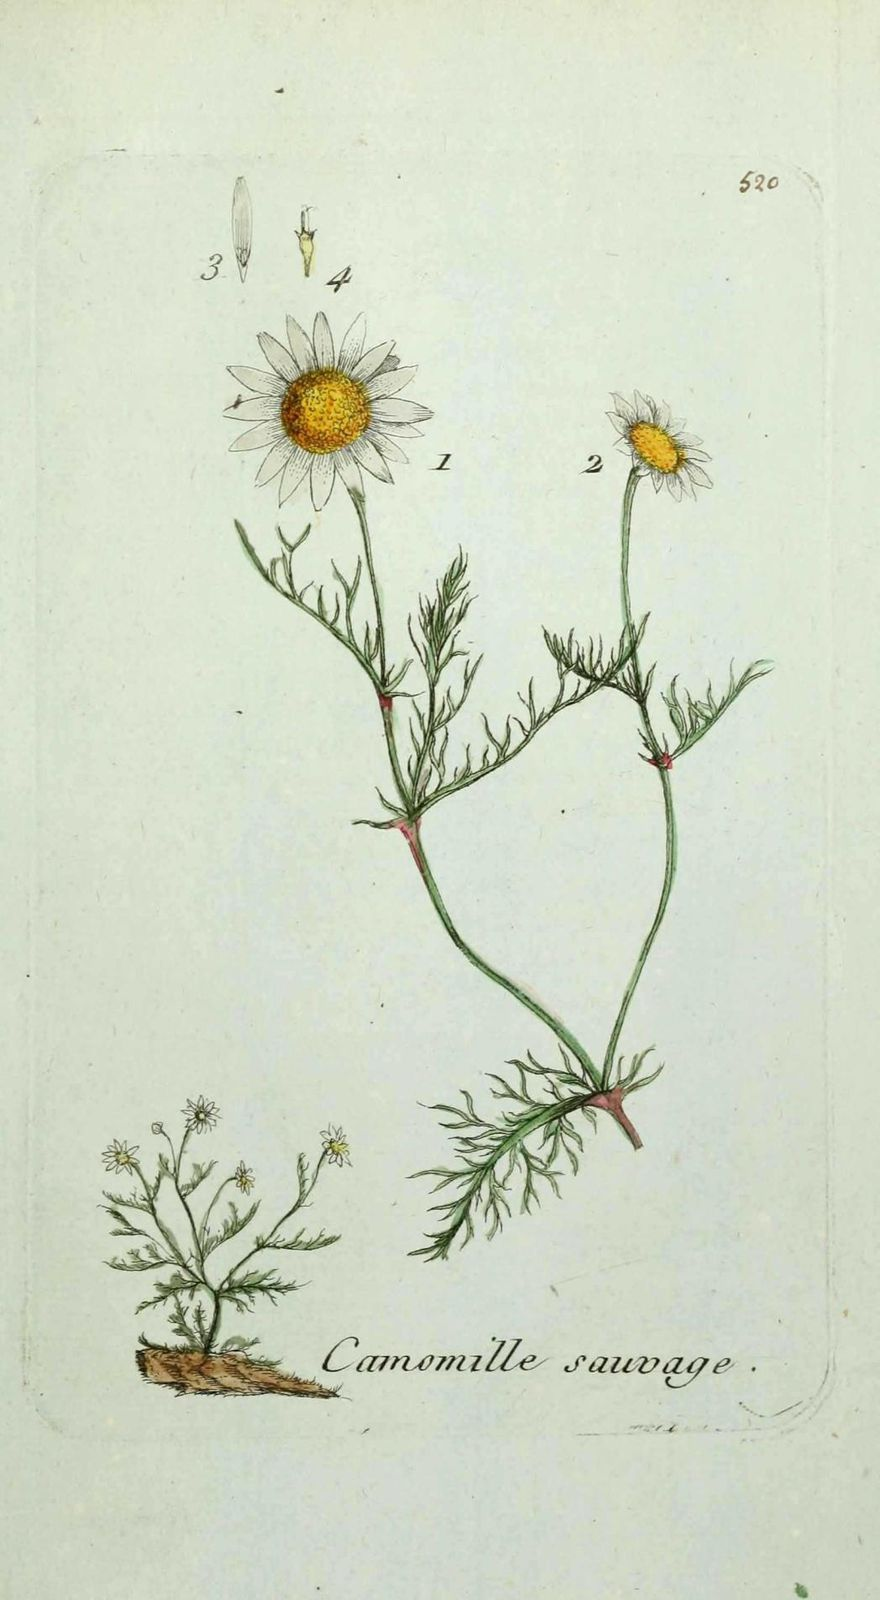 camomille puante - anthemis cotula ( camomille sauvage, mar